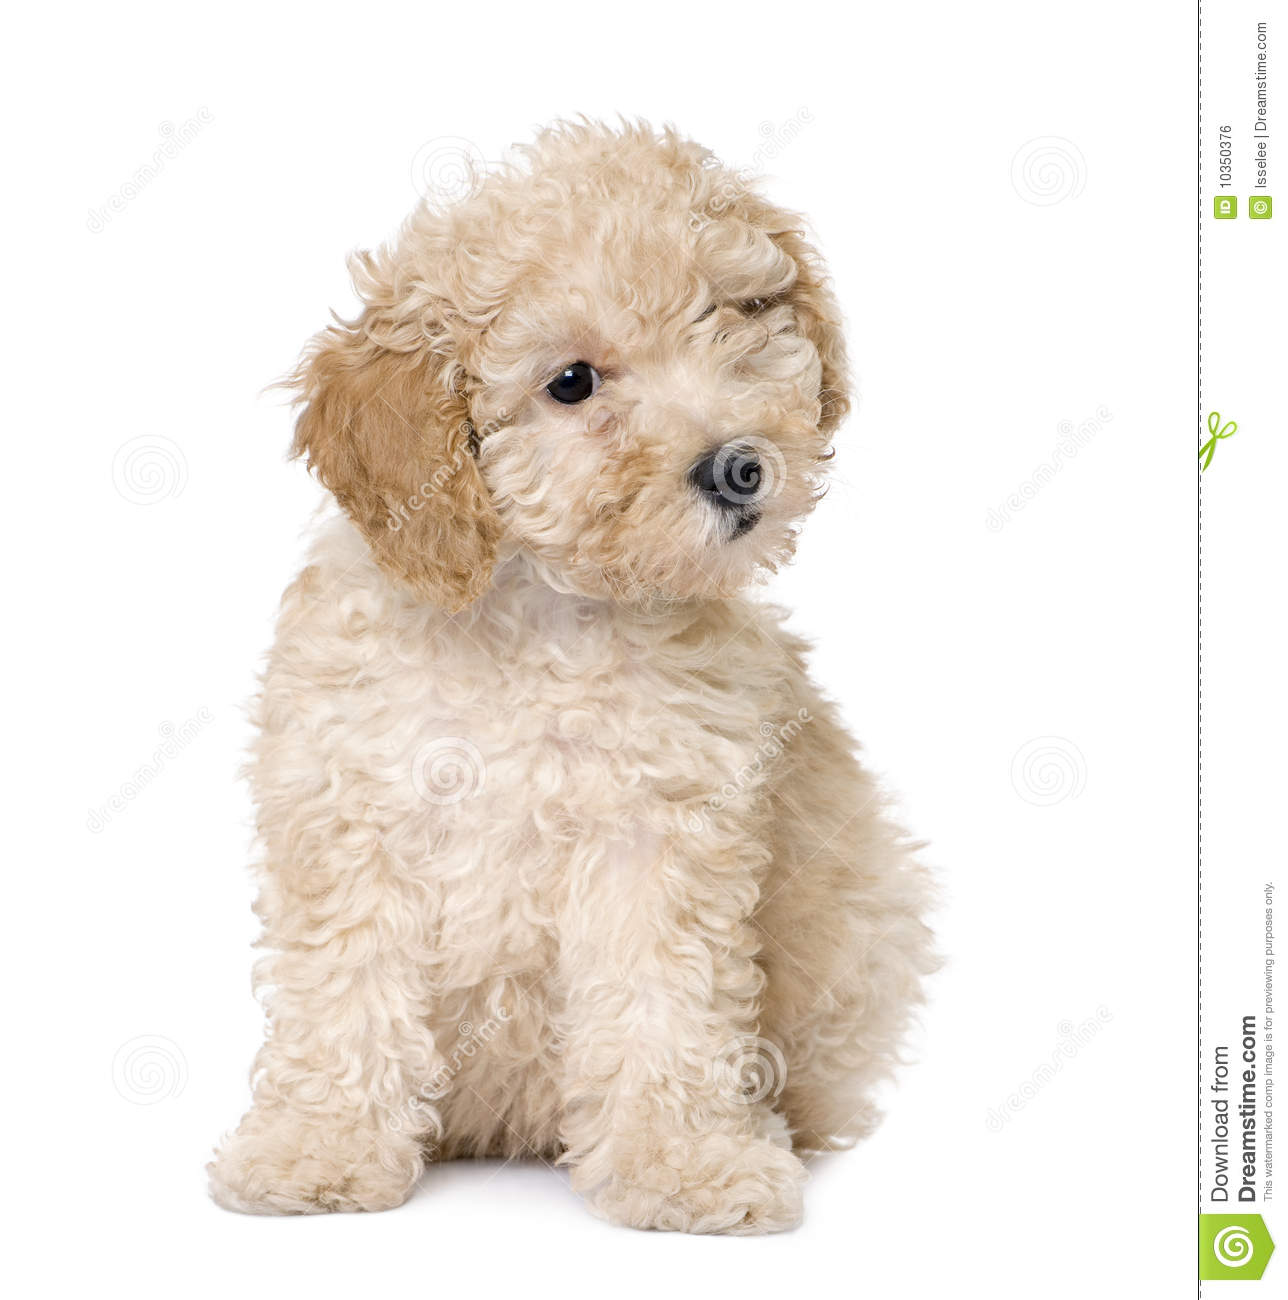 Puppy Cut Toy Poodle Dog : apricot toy poodle puppy